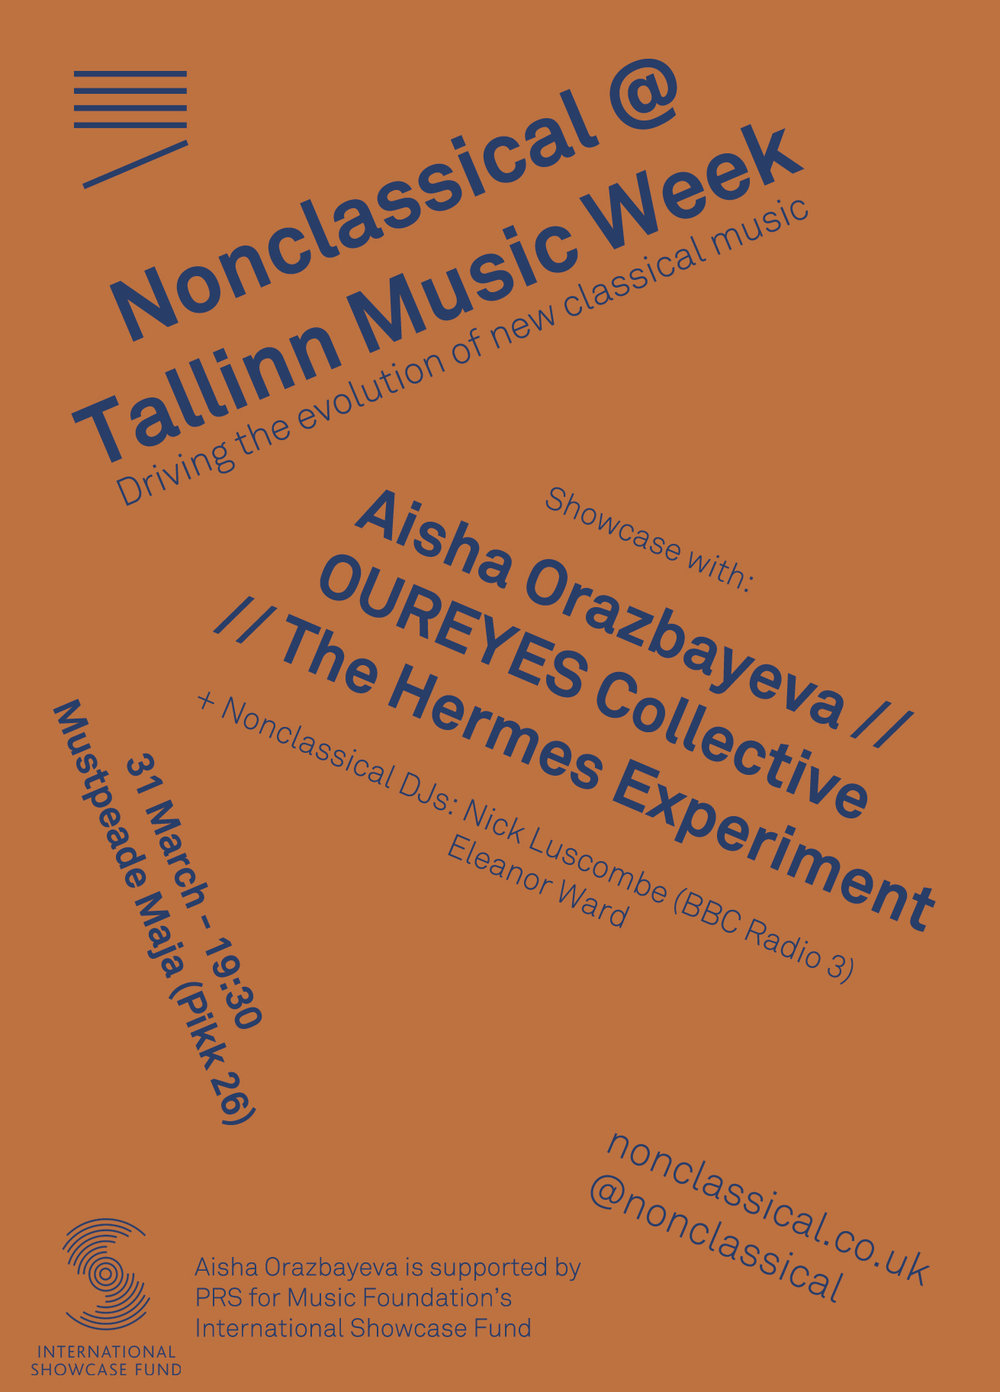 Nonclassical at Tallinn Music Week